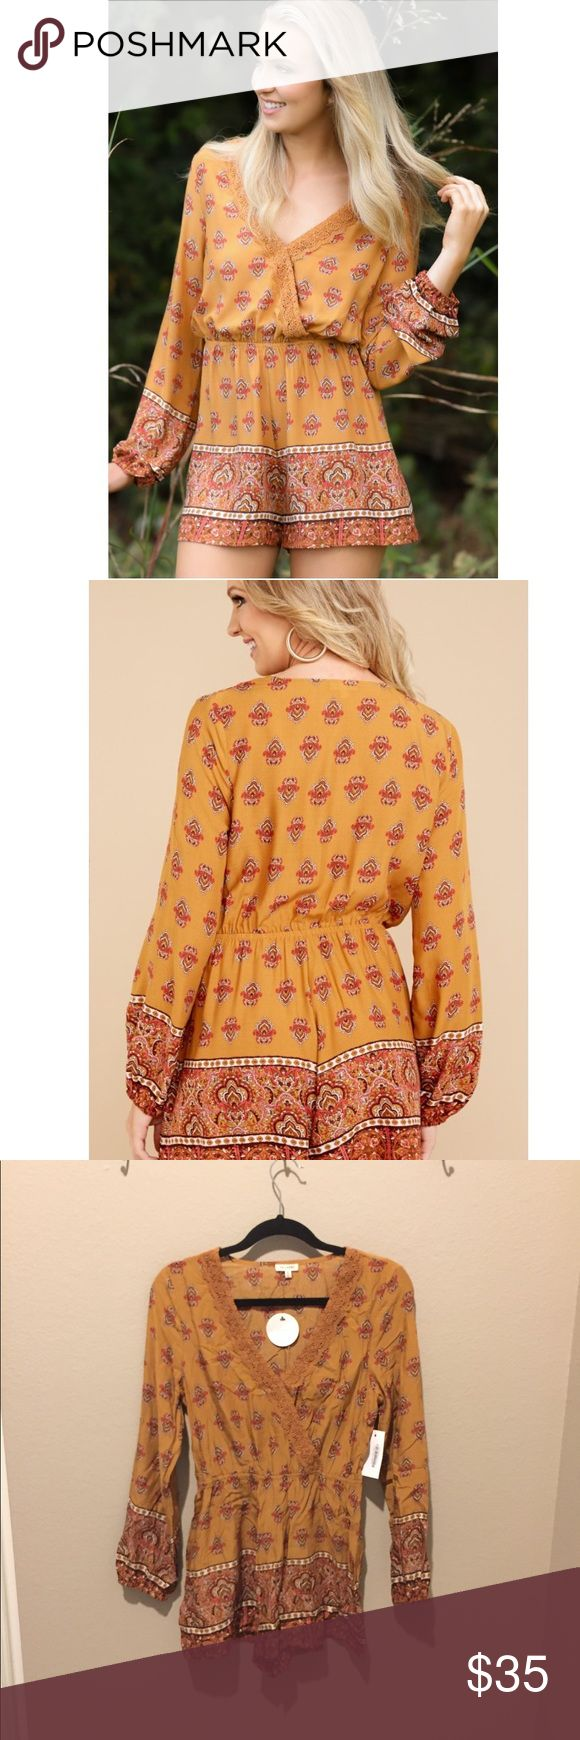 🎄Brand new bohemian romper Brand new with tags, purchased from Red Dress Boutique. Retails $46. Pretty mustard colored romper with fun bohemian print throughout. Features red and brown tones and fun details. Sizing seems to run a little small, juniors sizing but please ask for any measurements you'd like. en creme Pants Jumpsuits & Rompers